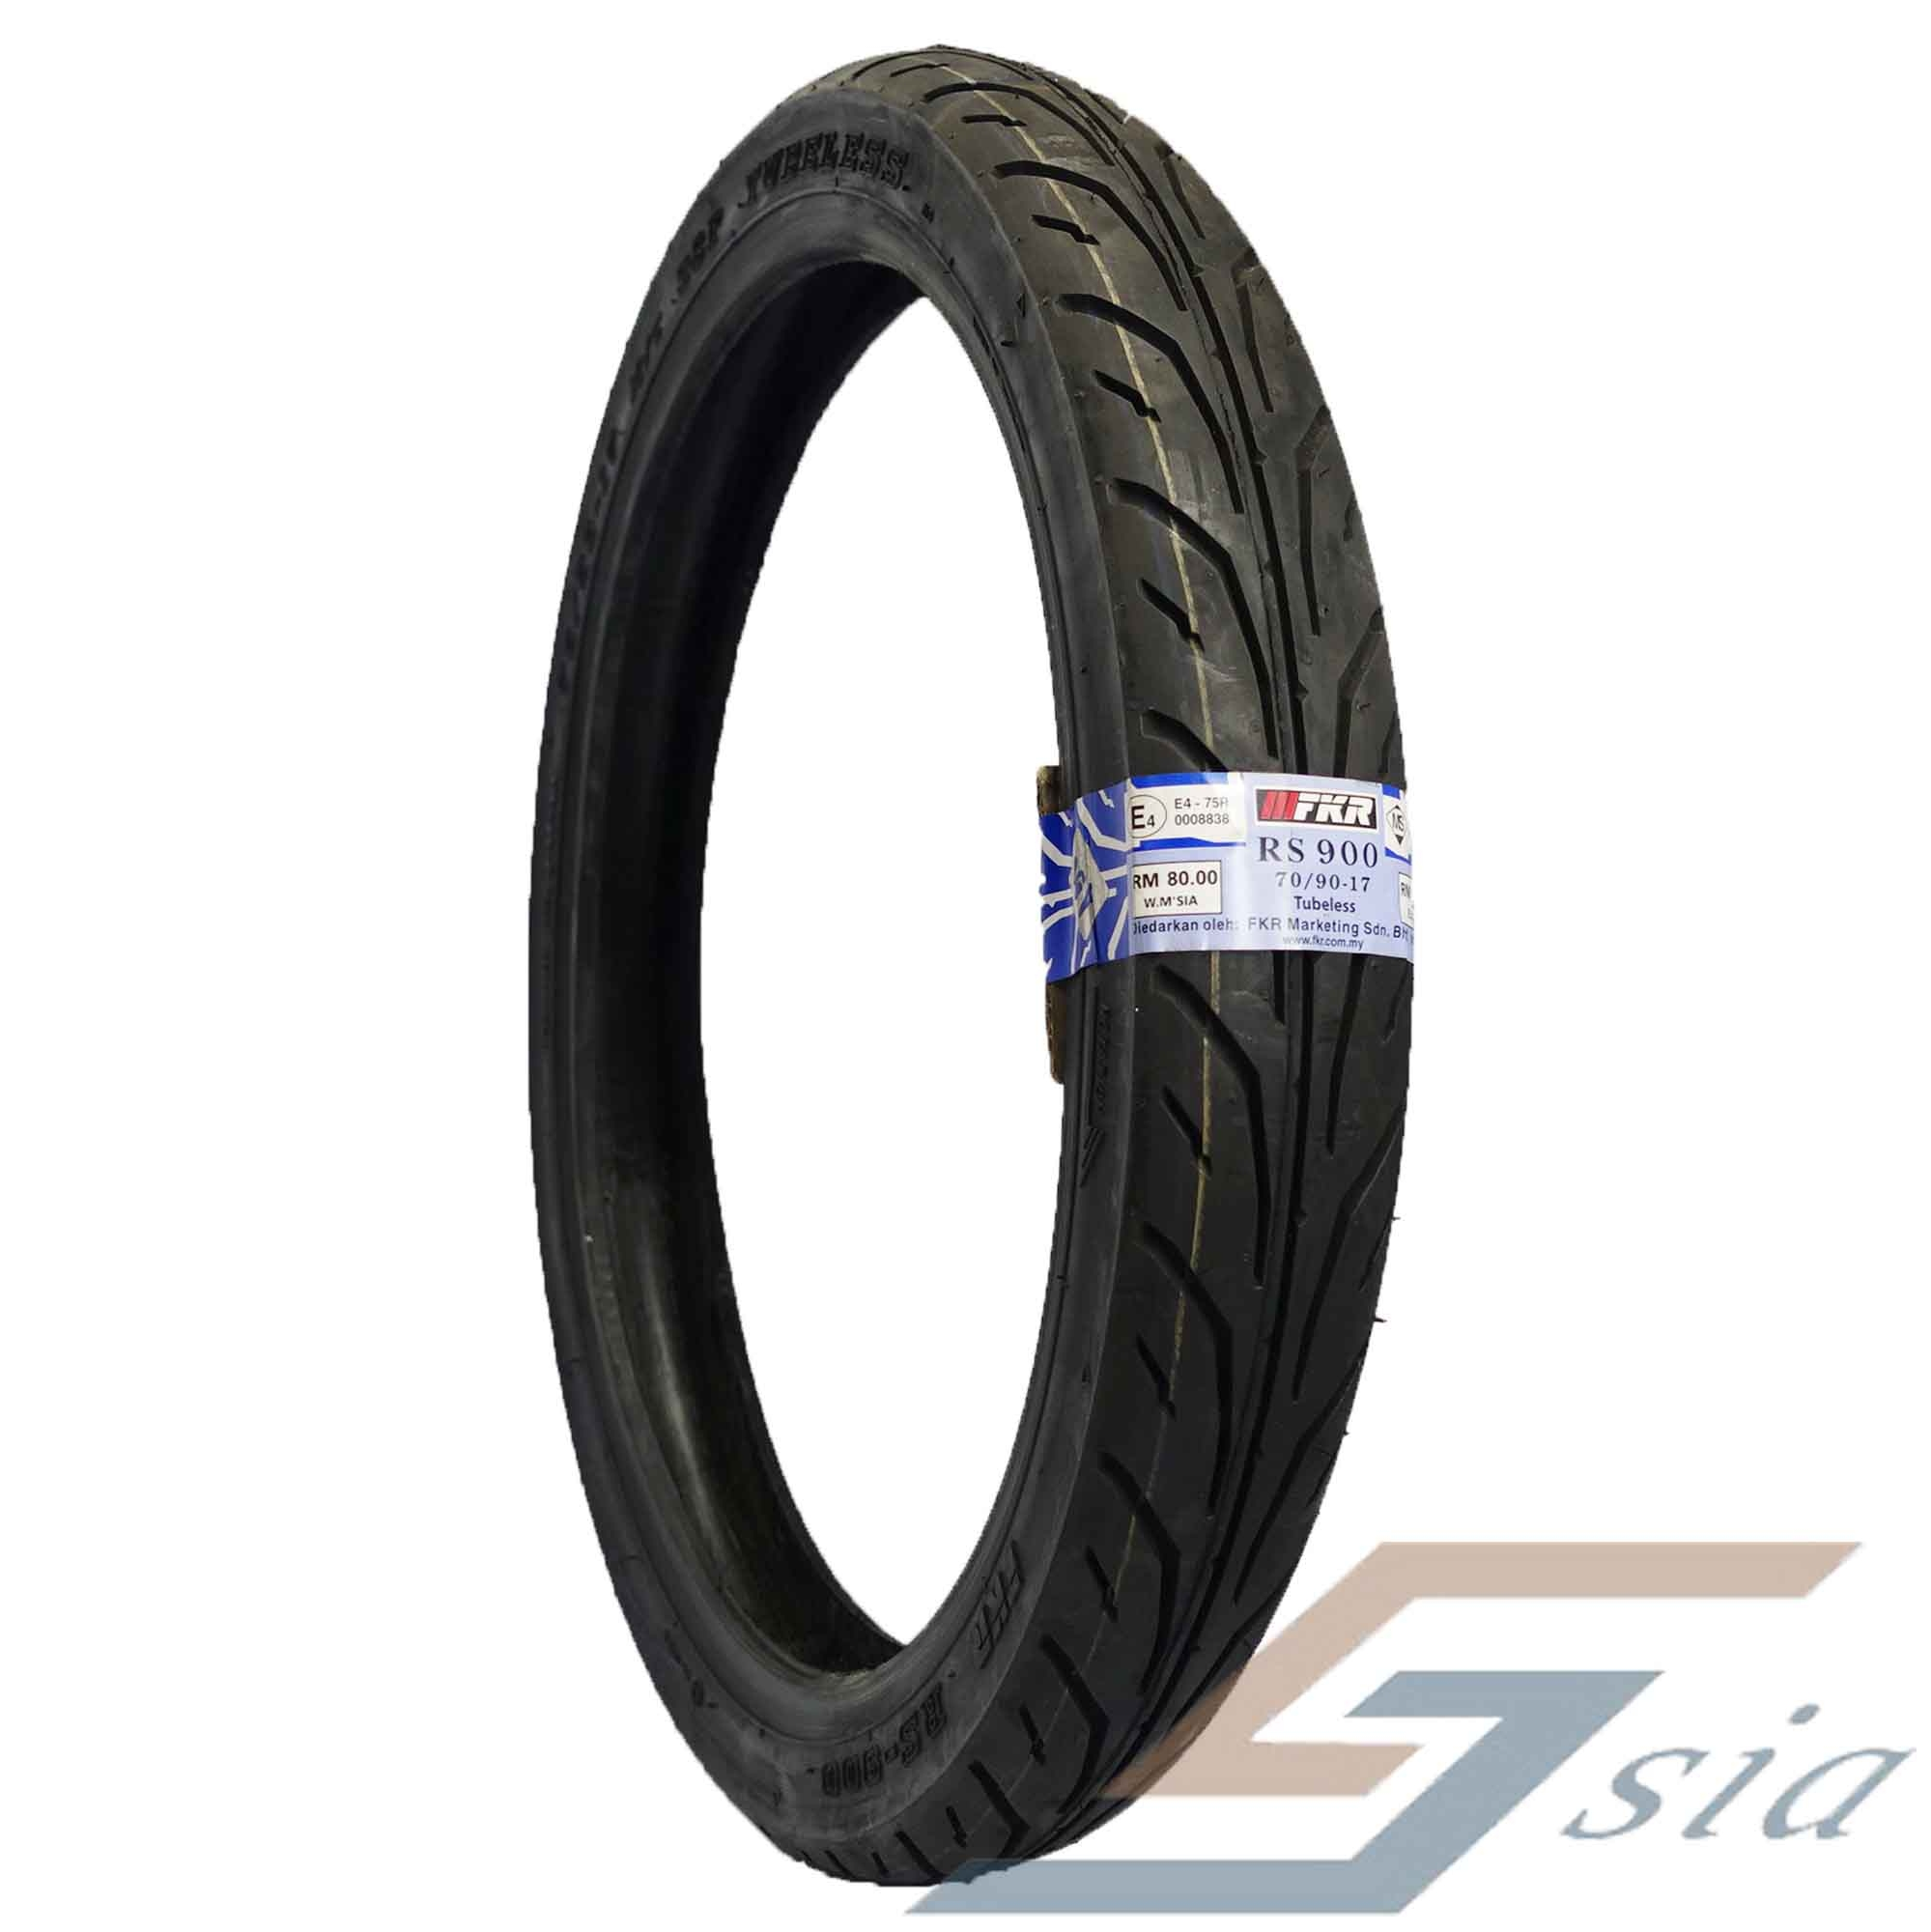 Tubeless Tyre Price Harga In Malaysia Lelong Zeneos Zn 75 90 80 14 Ban Motor Fkr Rs900 70 17 Motorcycle